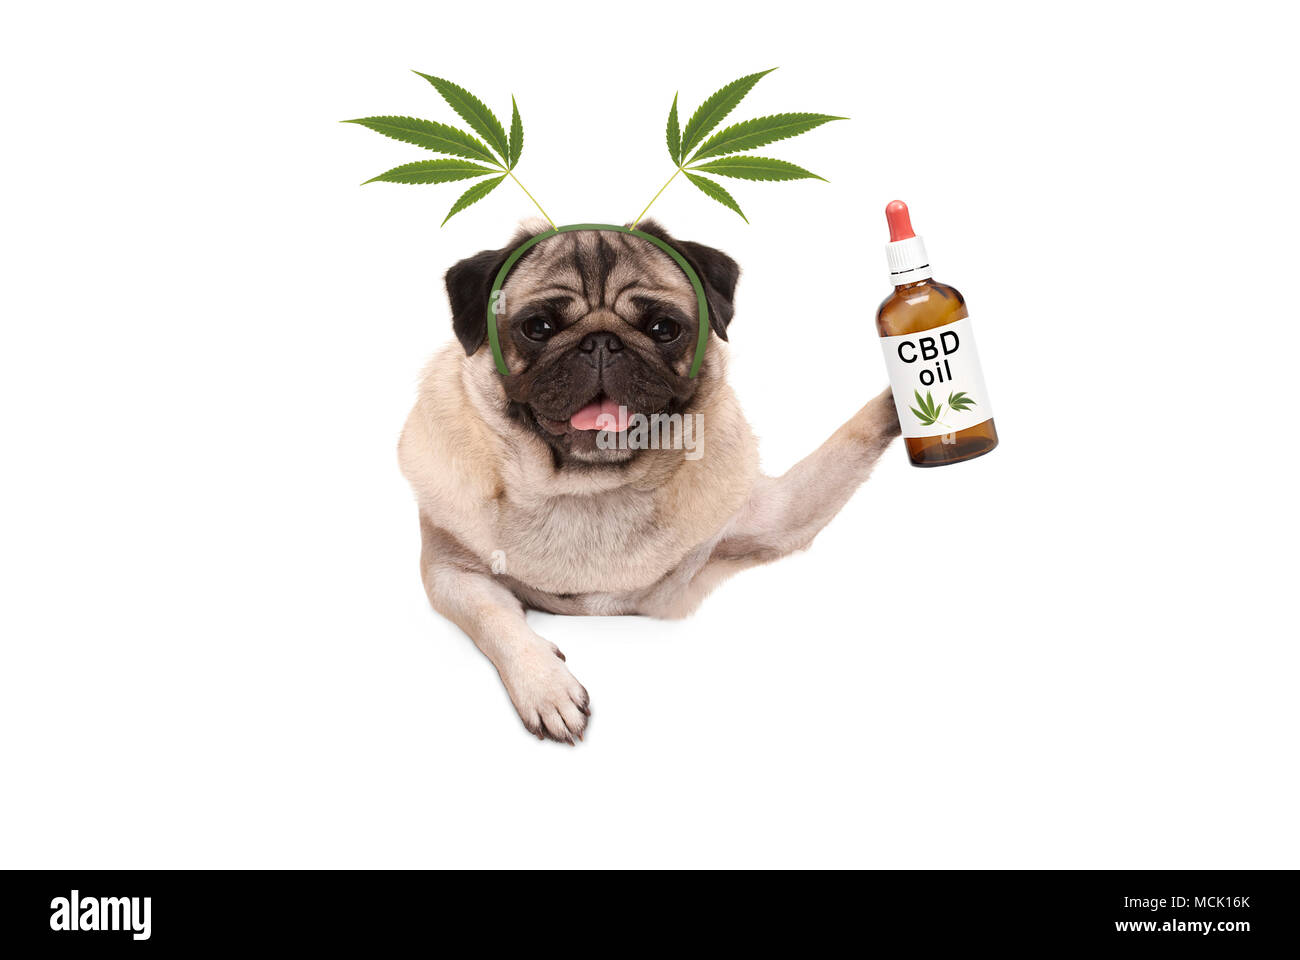 cute smiling pug puppy dog holding up bottle of CBD oil wearing  marijuana hemp leaf diadem, isolated on white background Stock Photo